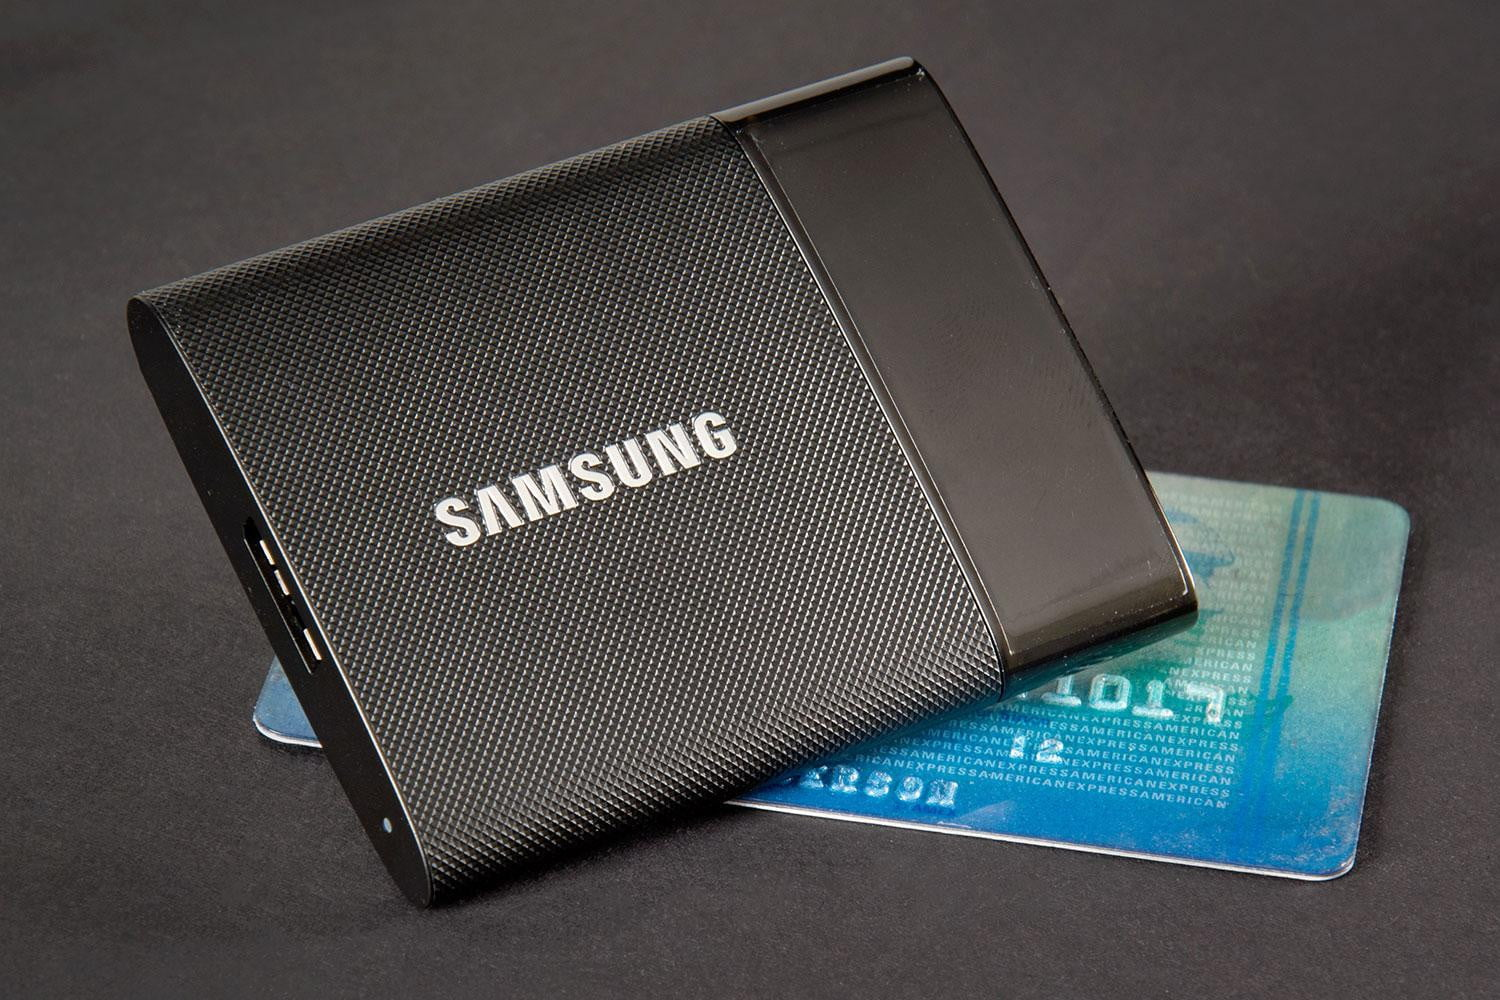 Samsung Portable Ssd T1 Review Digital Trends